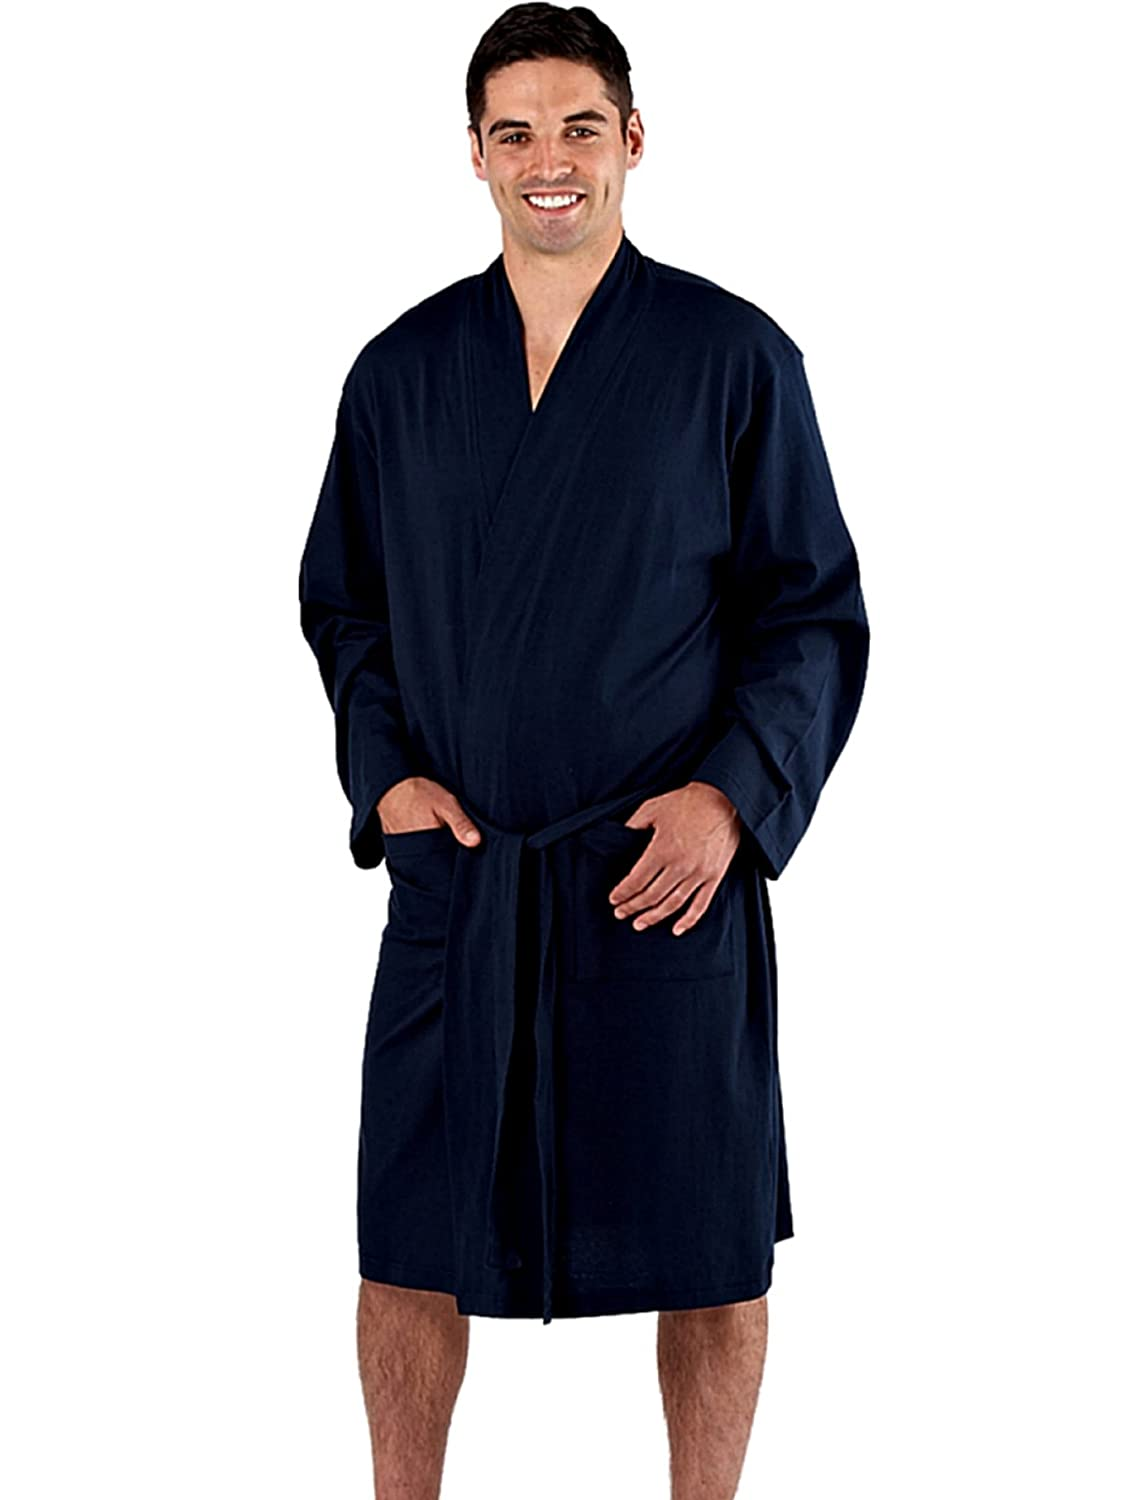 harvey james Mens Robe Dressing Gown Kimono Cotton at Amazon Mens Clothing store: